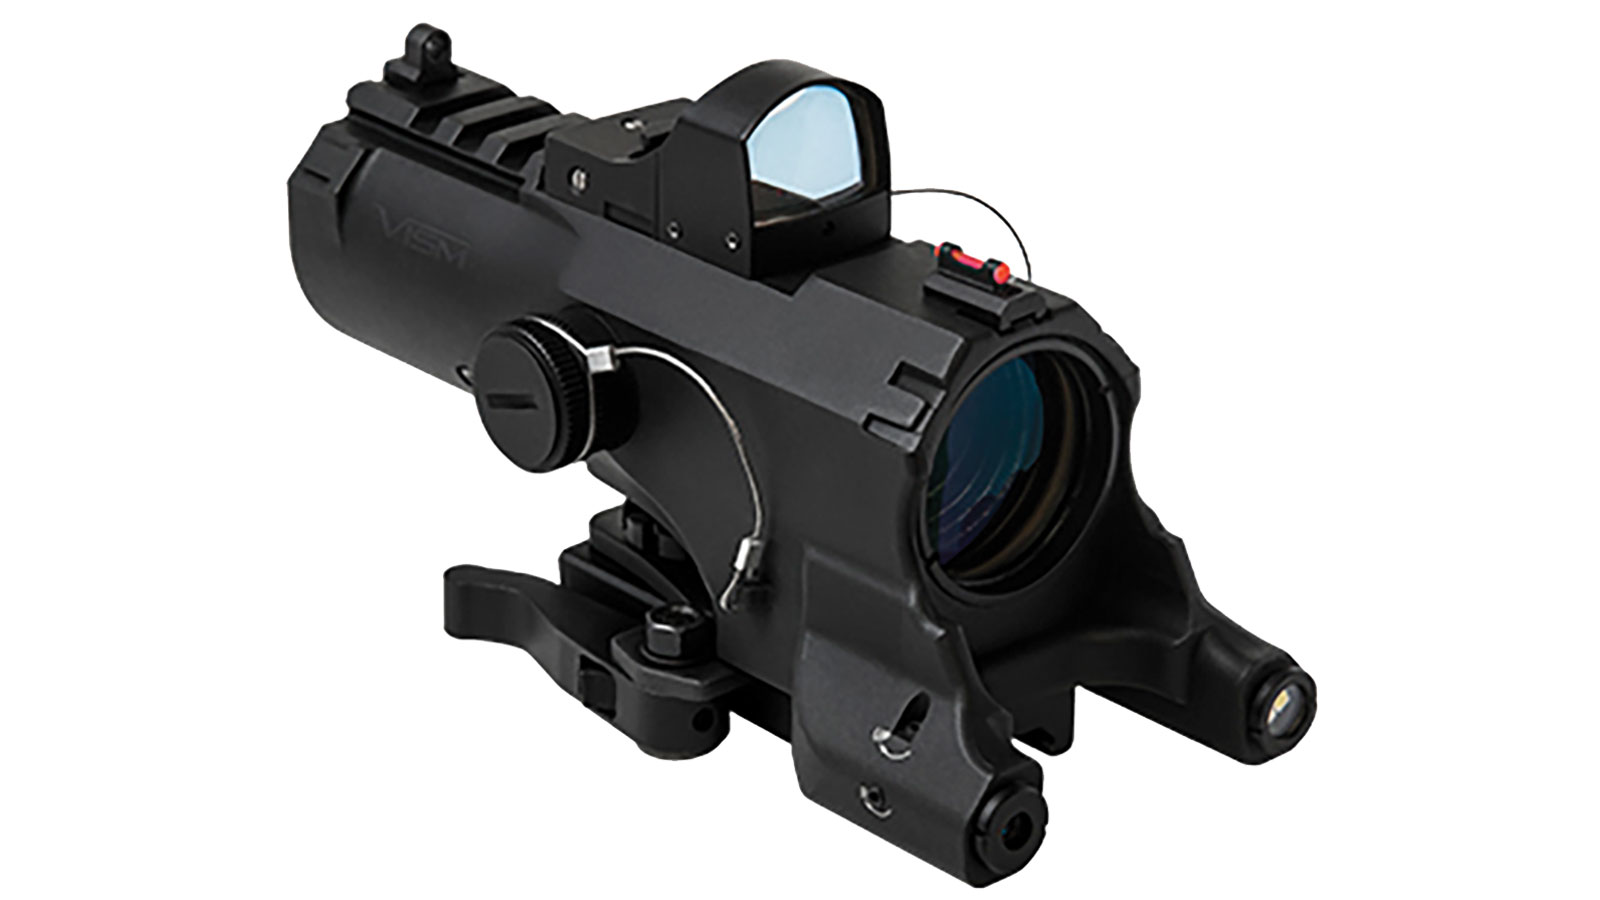 NcStar Eco 4x Scope Laser and LED Micro Red Dot